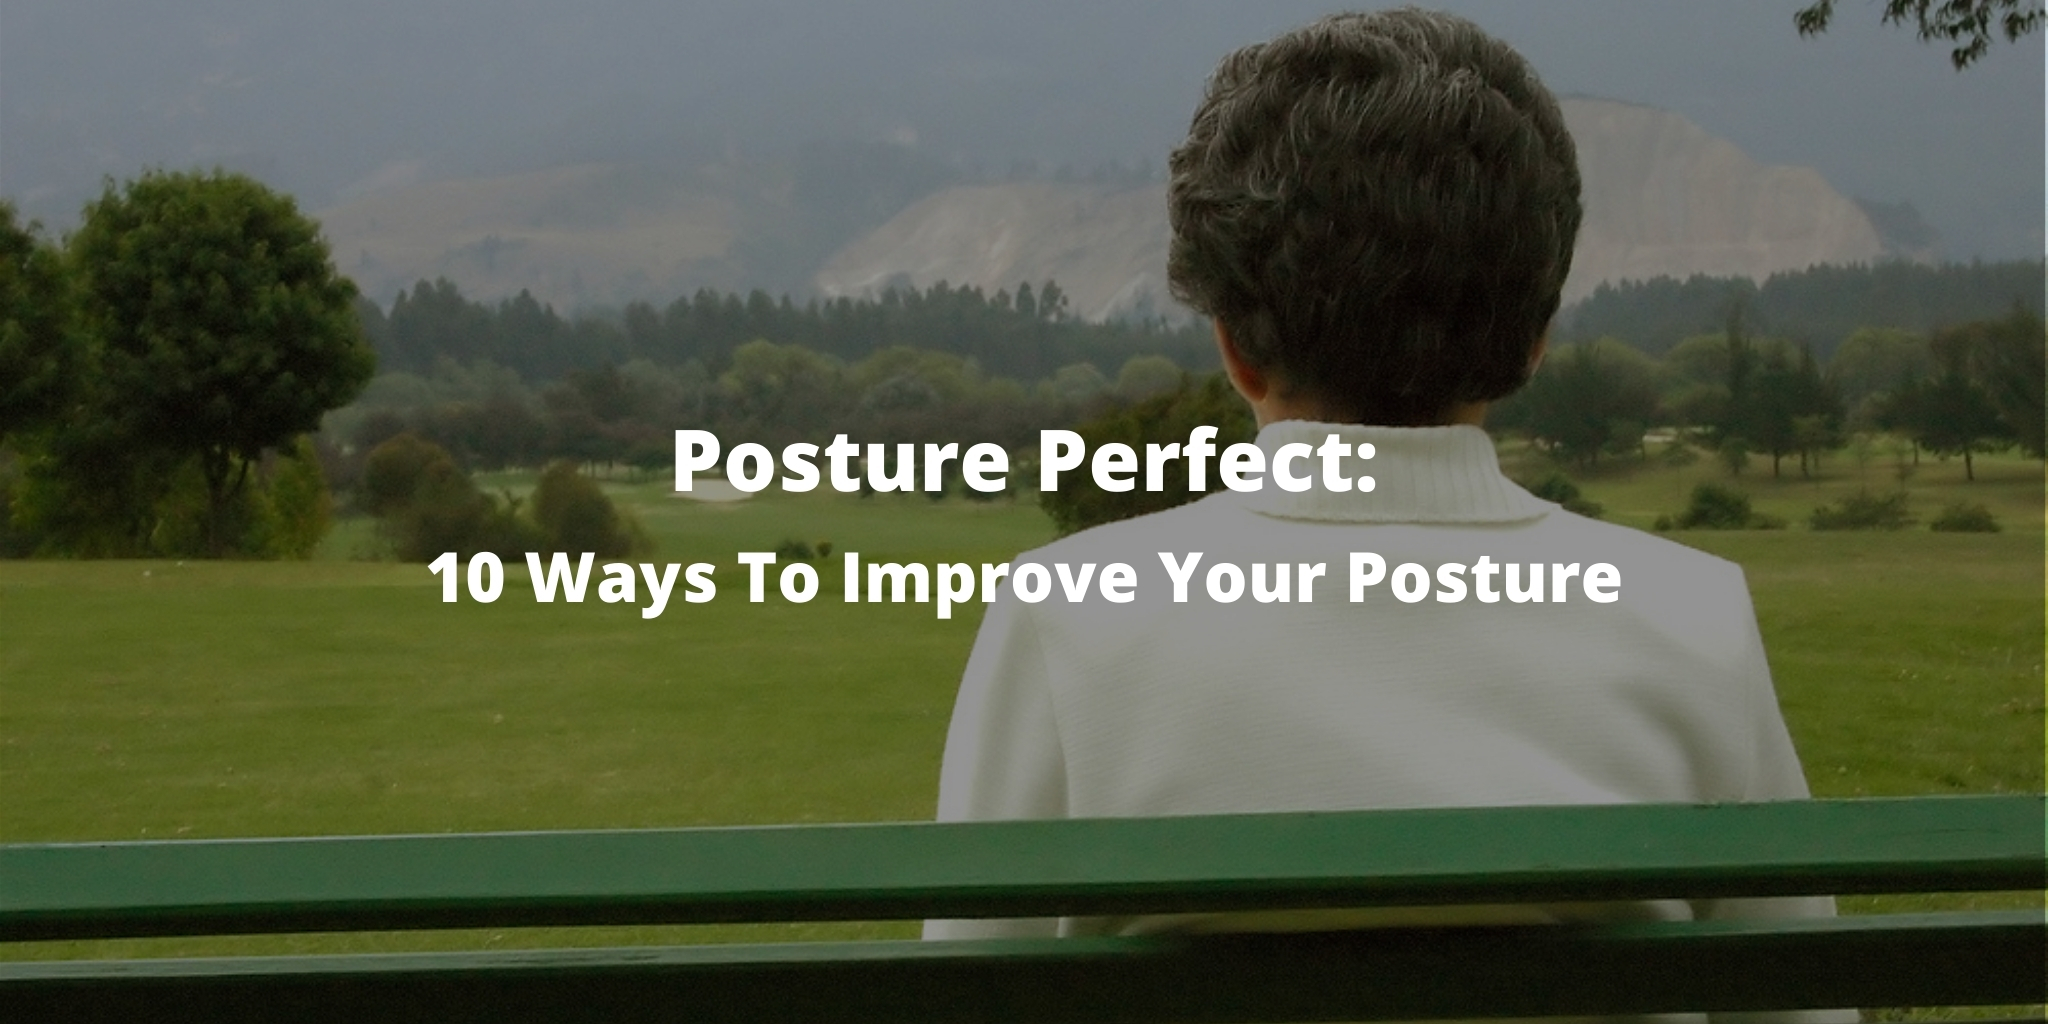 Posture Perfect: 10 Ways To Improve Your Posture